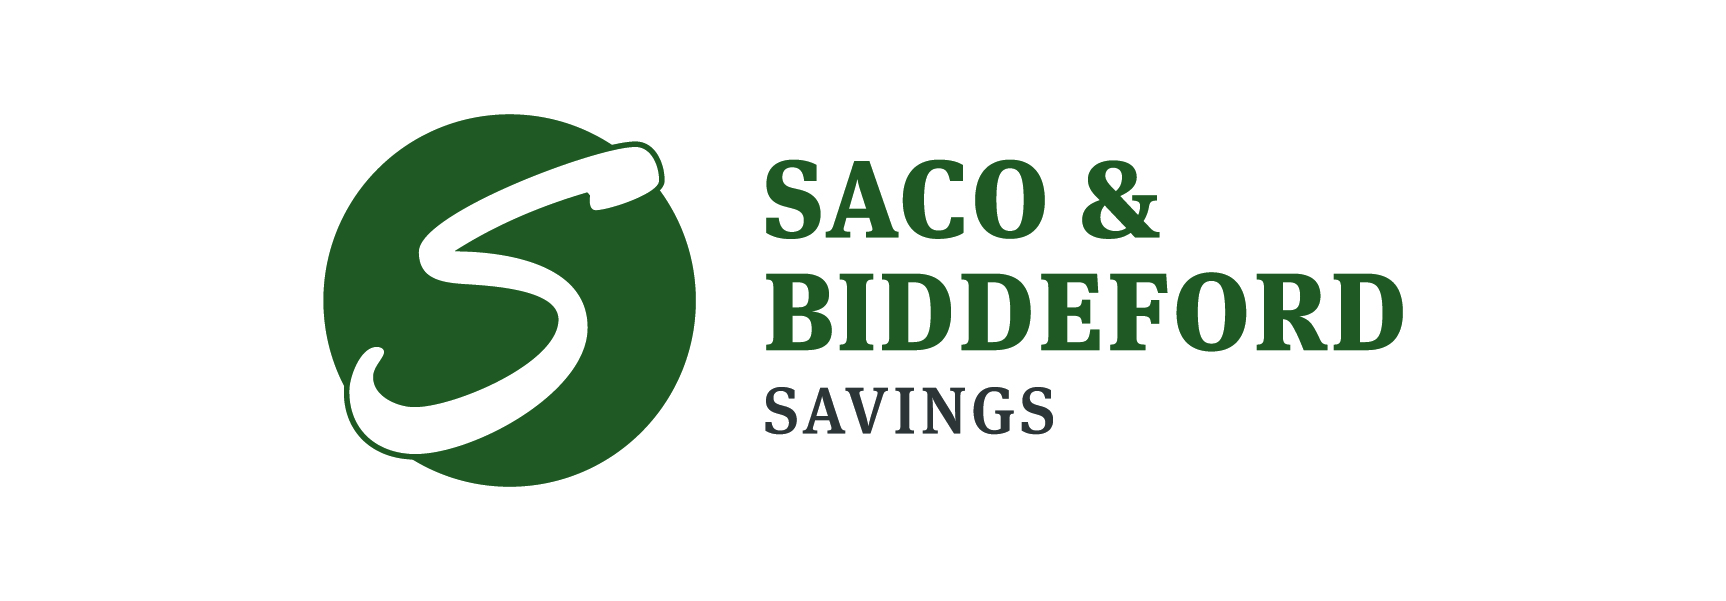 Saco and Biddeford Savings